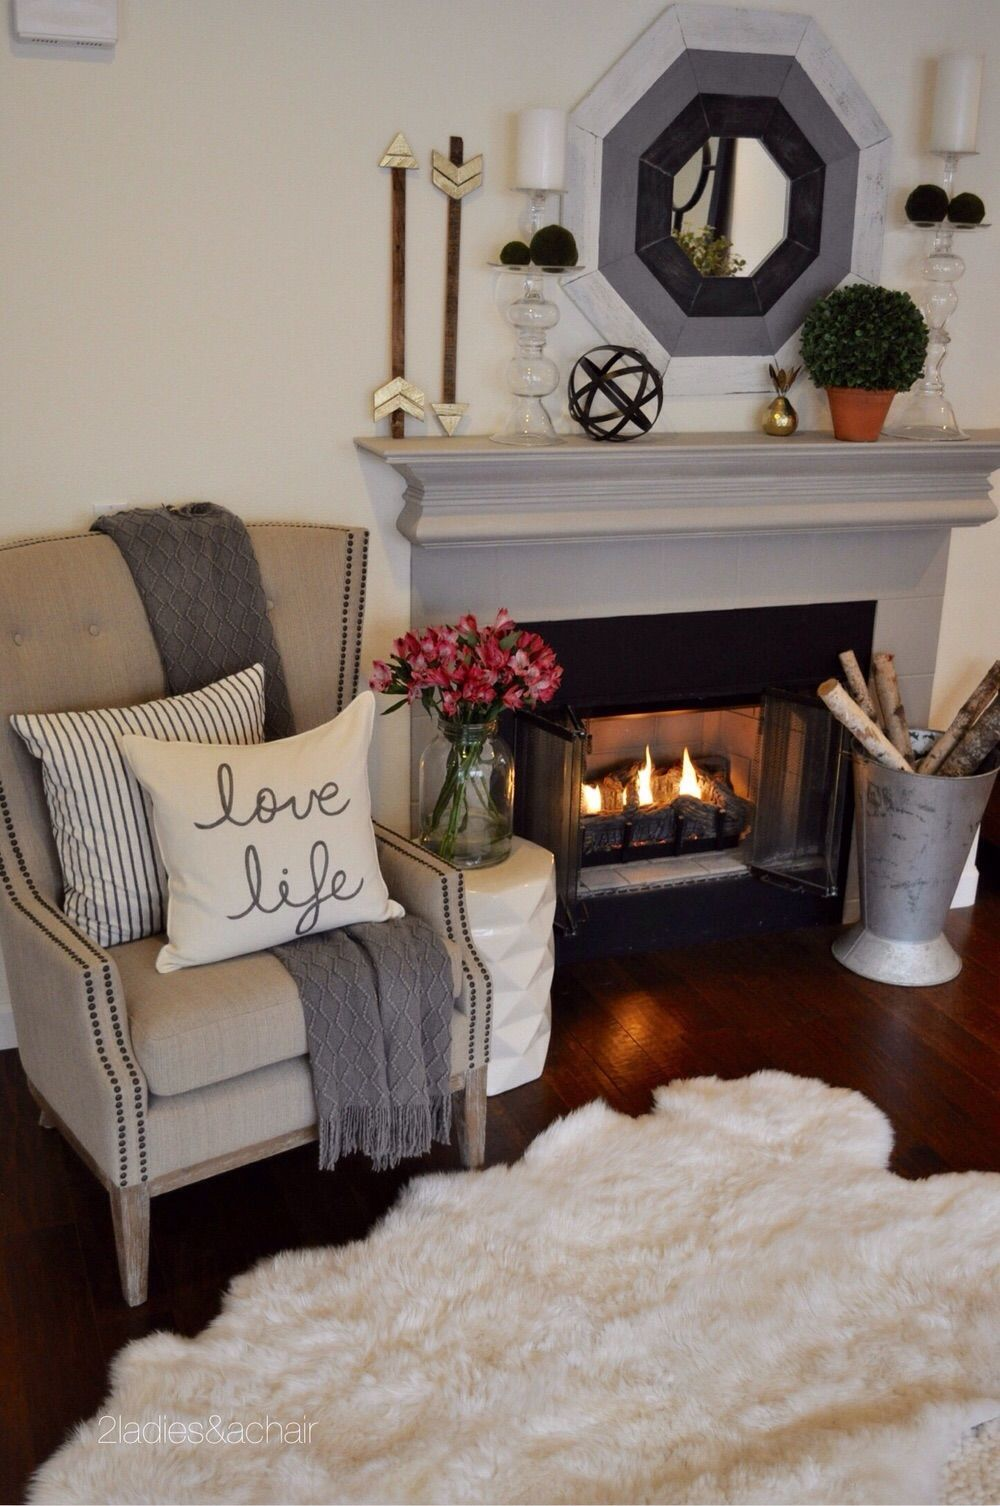 The Best Chair 2 Ladies A Chair Rustic Living Room Living Room Decor Rustic Bedroom Decor Cozy